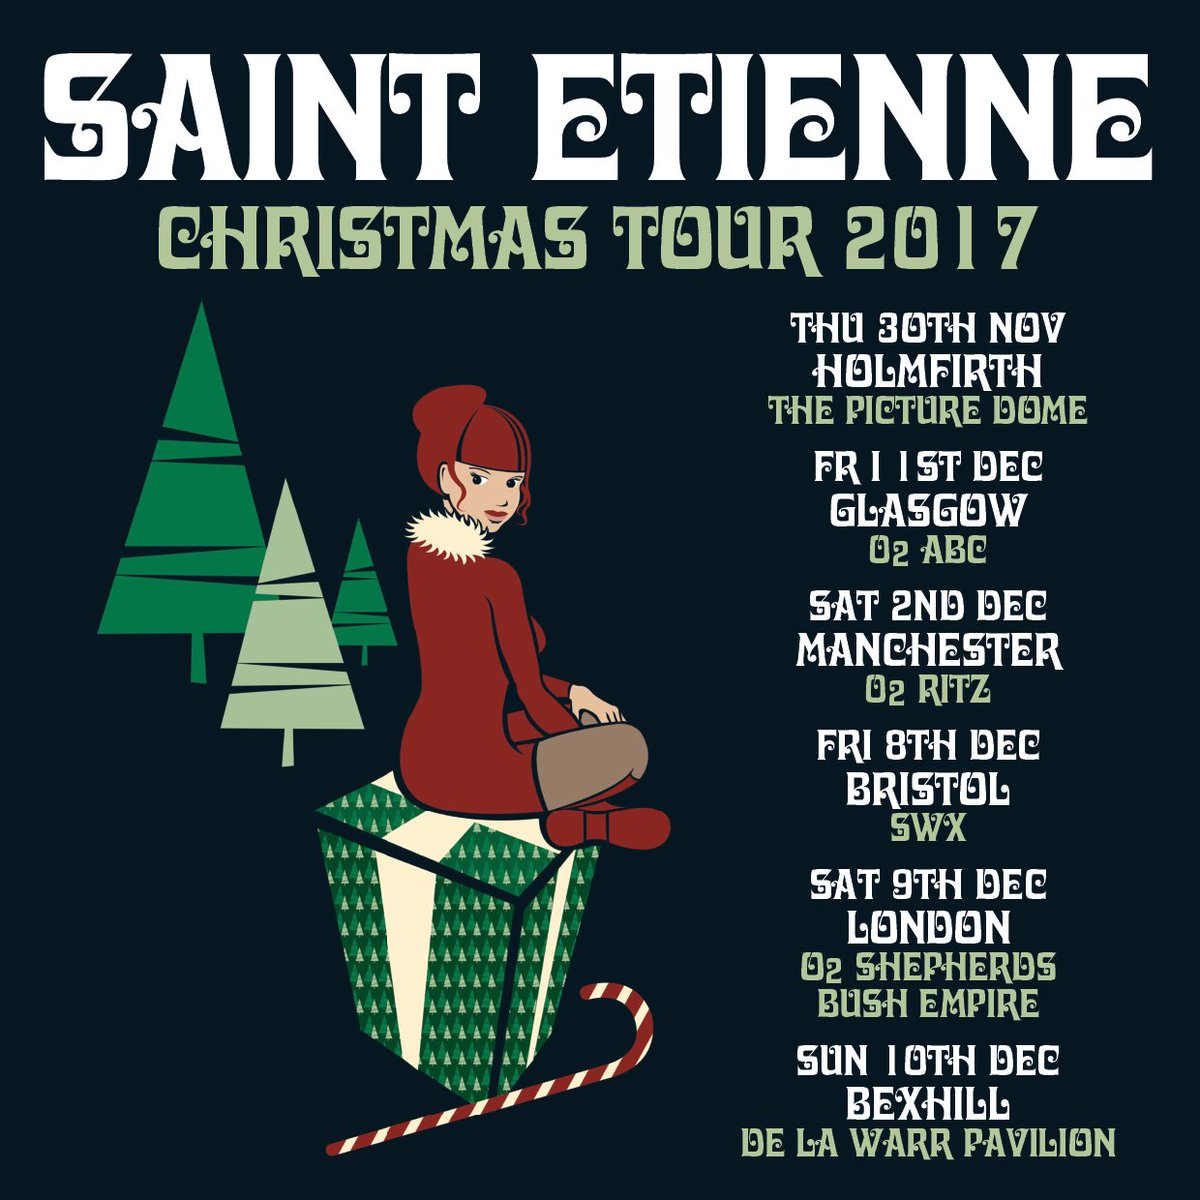 ON SALE//  Tix for #SaintEtienne (@bobpetesarah)&#39;s MCR / LDN show this Dec are on sale now!  HERE:   http:// gigst.rs/SaintEt  &nbsp;  <br>http://pic.twitter.com/WO9q7kGvyj